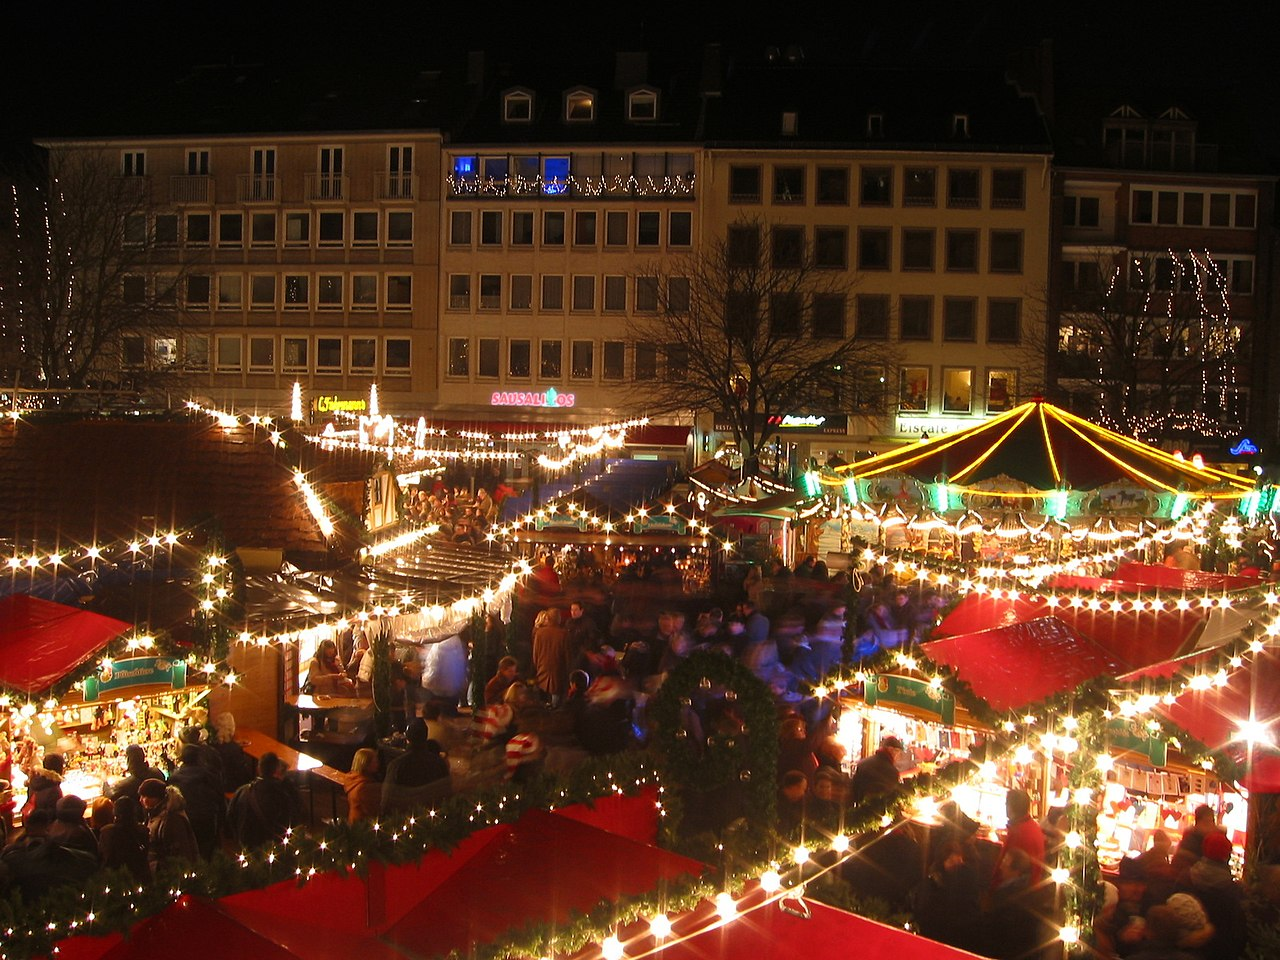 file weihnachtsmarkt aachen markt jpg wikimedia commons. Black Bedroom Furniture Sets. Home Design Ideas